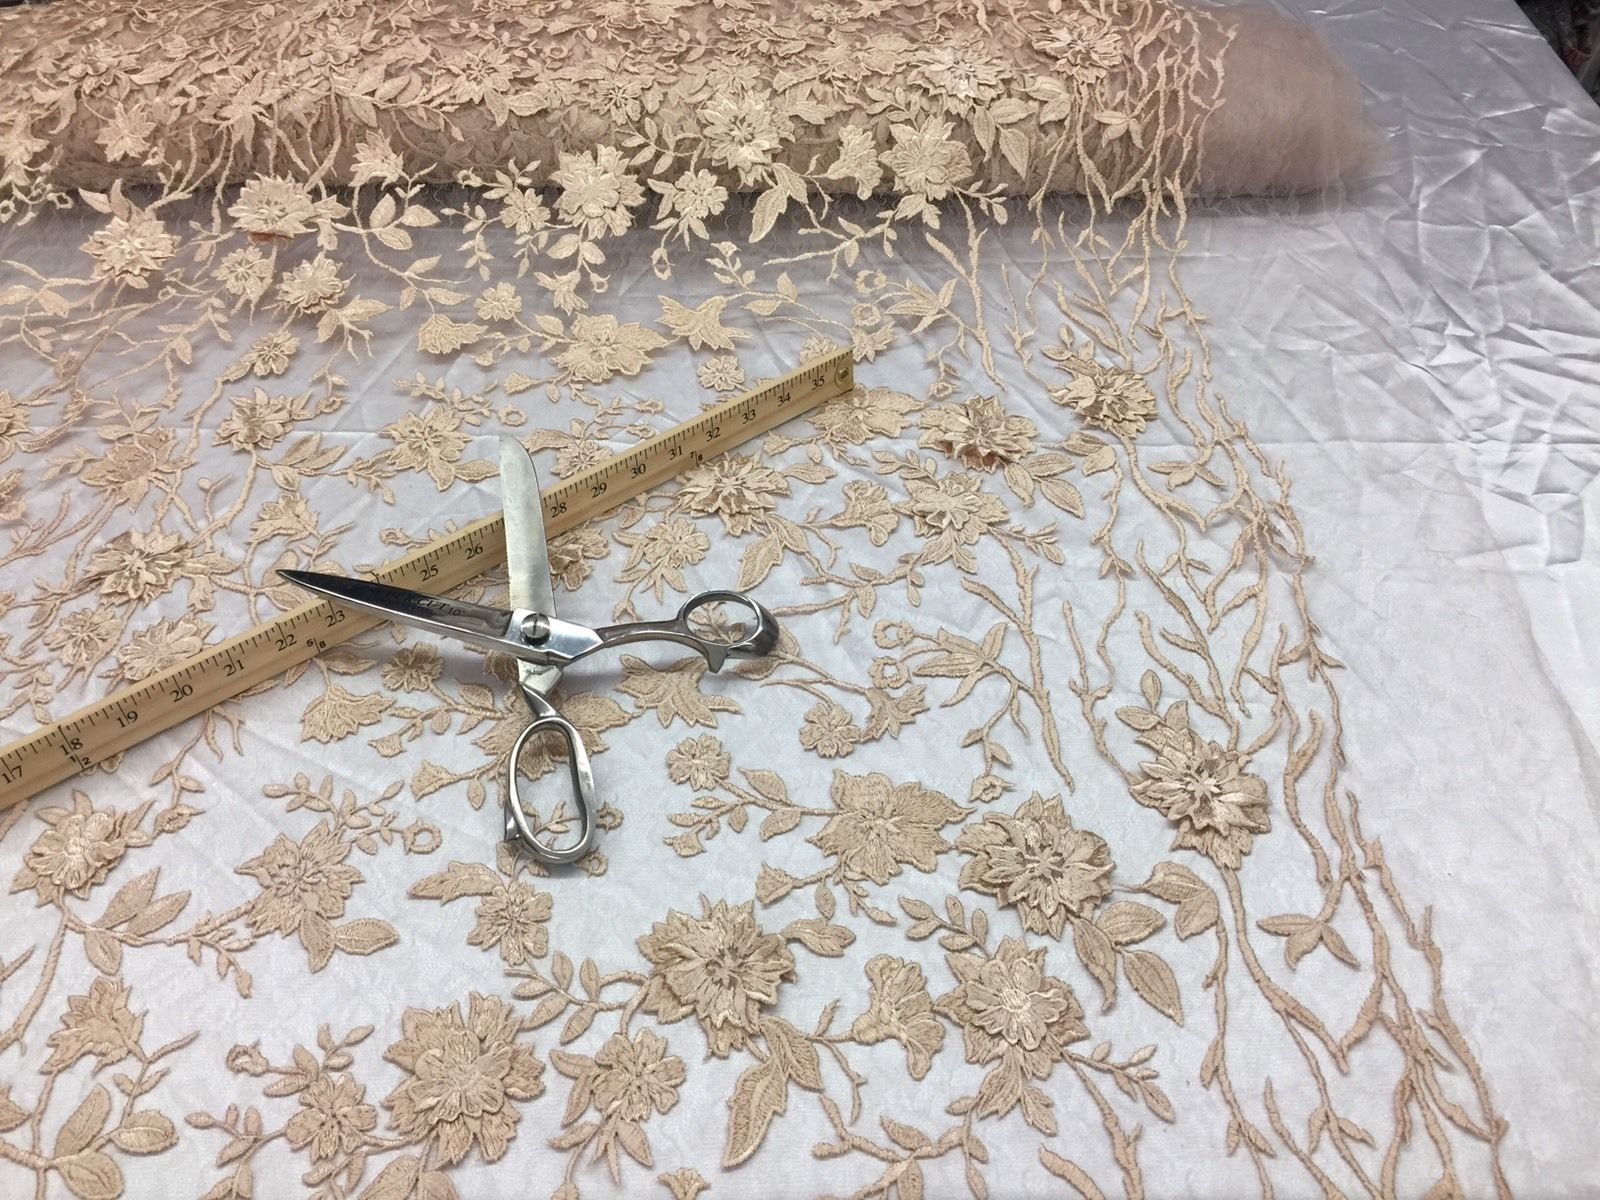 Flower Fabric - Mesh Net Type Spider 3D Flowers Champagne For Dress By The Yard - KINGDOM OF FABRICS